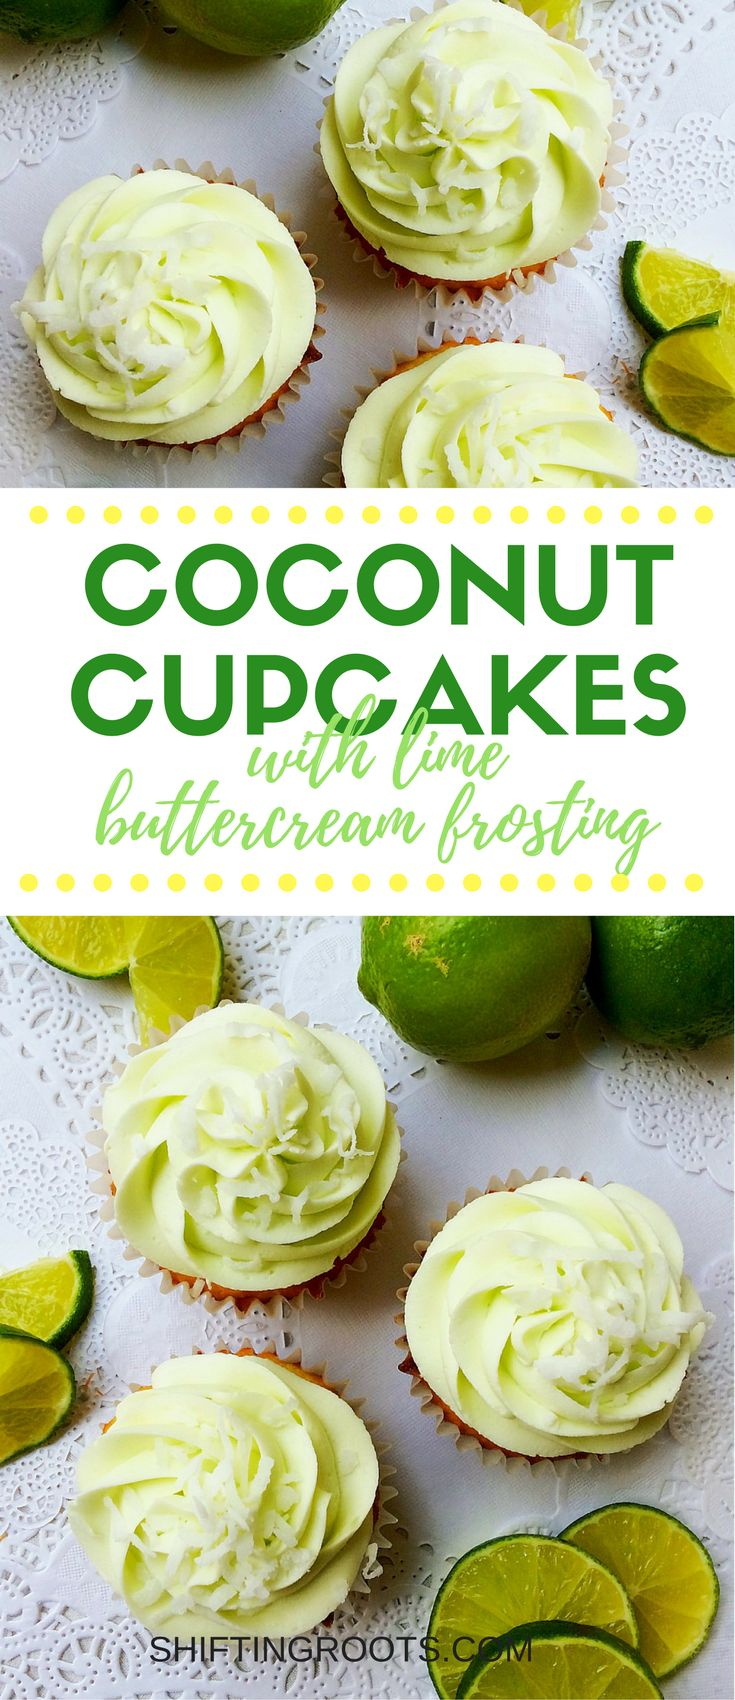 Life's short, eat dessert first! Coconut and lime combine for an easy tropical cupcake recipe you'll want to make over and over. You'll love the homemade coconut cake recipe and drool over the lime frosting. Baking from scratch never tasted so good!